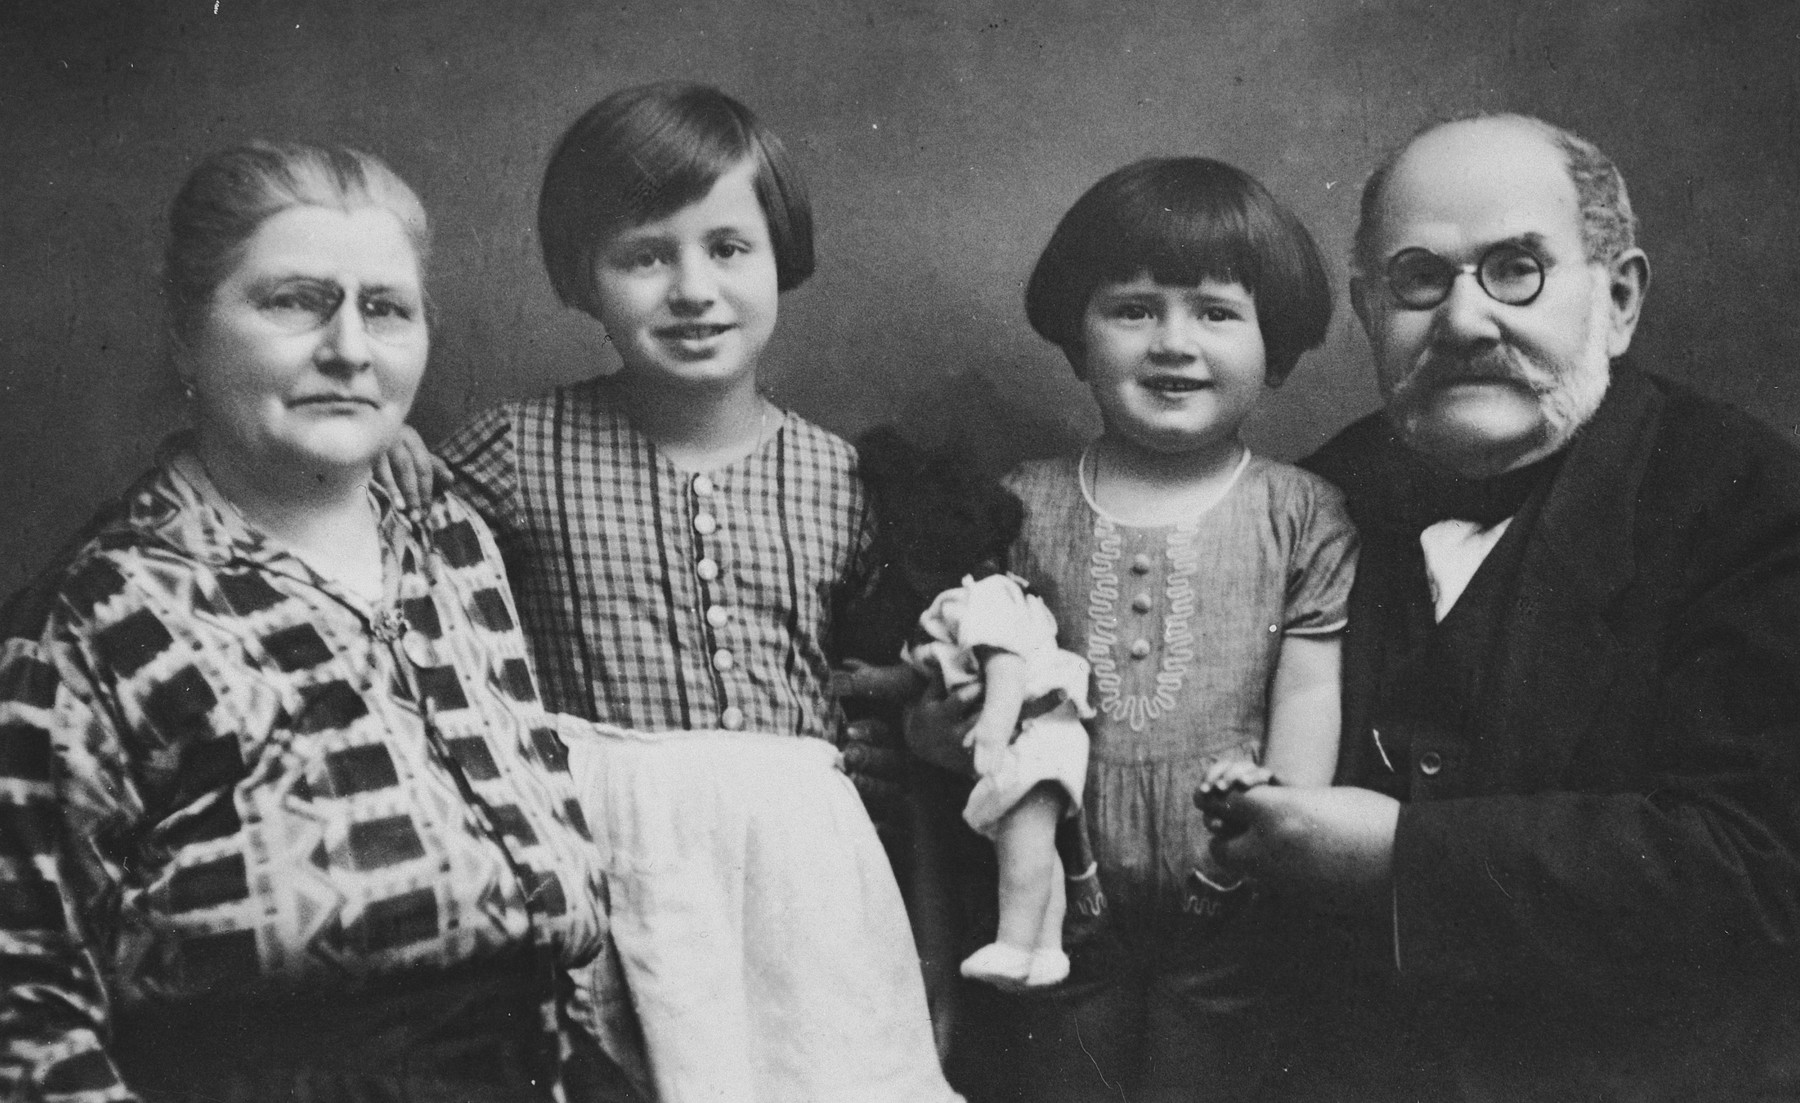 Portrait of the Loeffler family.  From left to right are Marie Loeffler, her grandaughters Mitzi and Susanna, and Ignatz Loeffler.